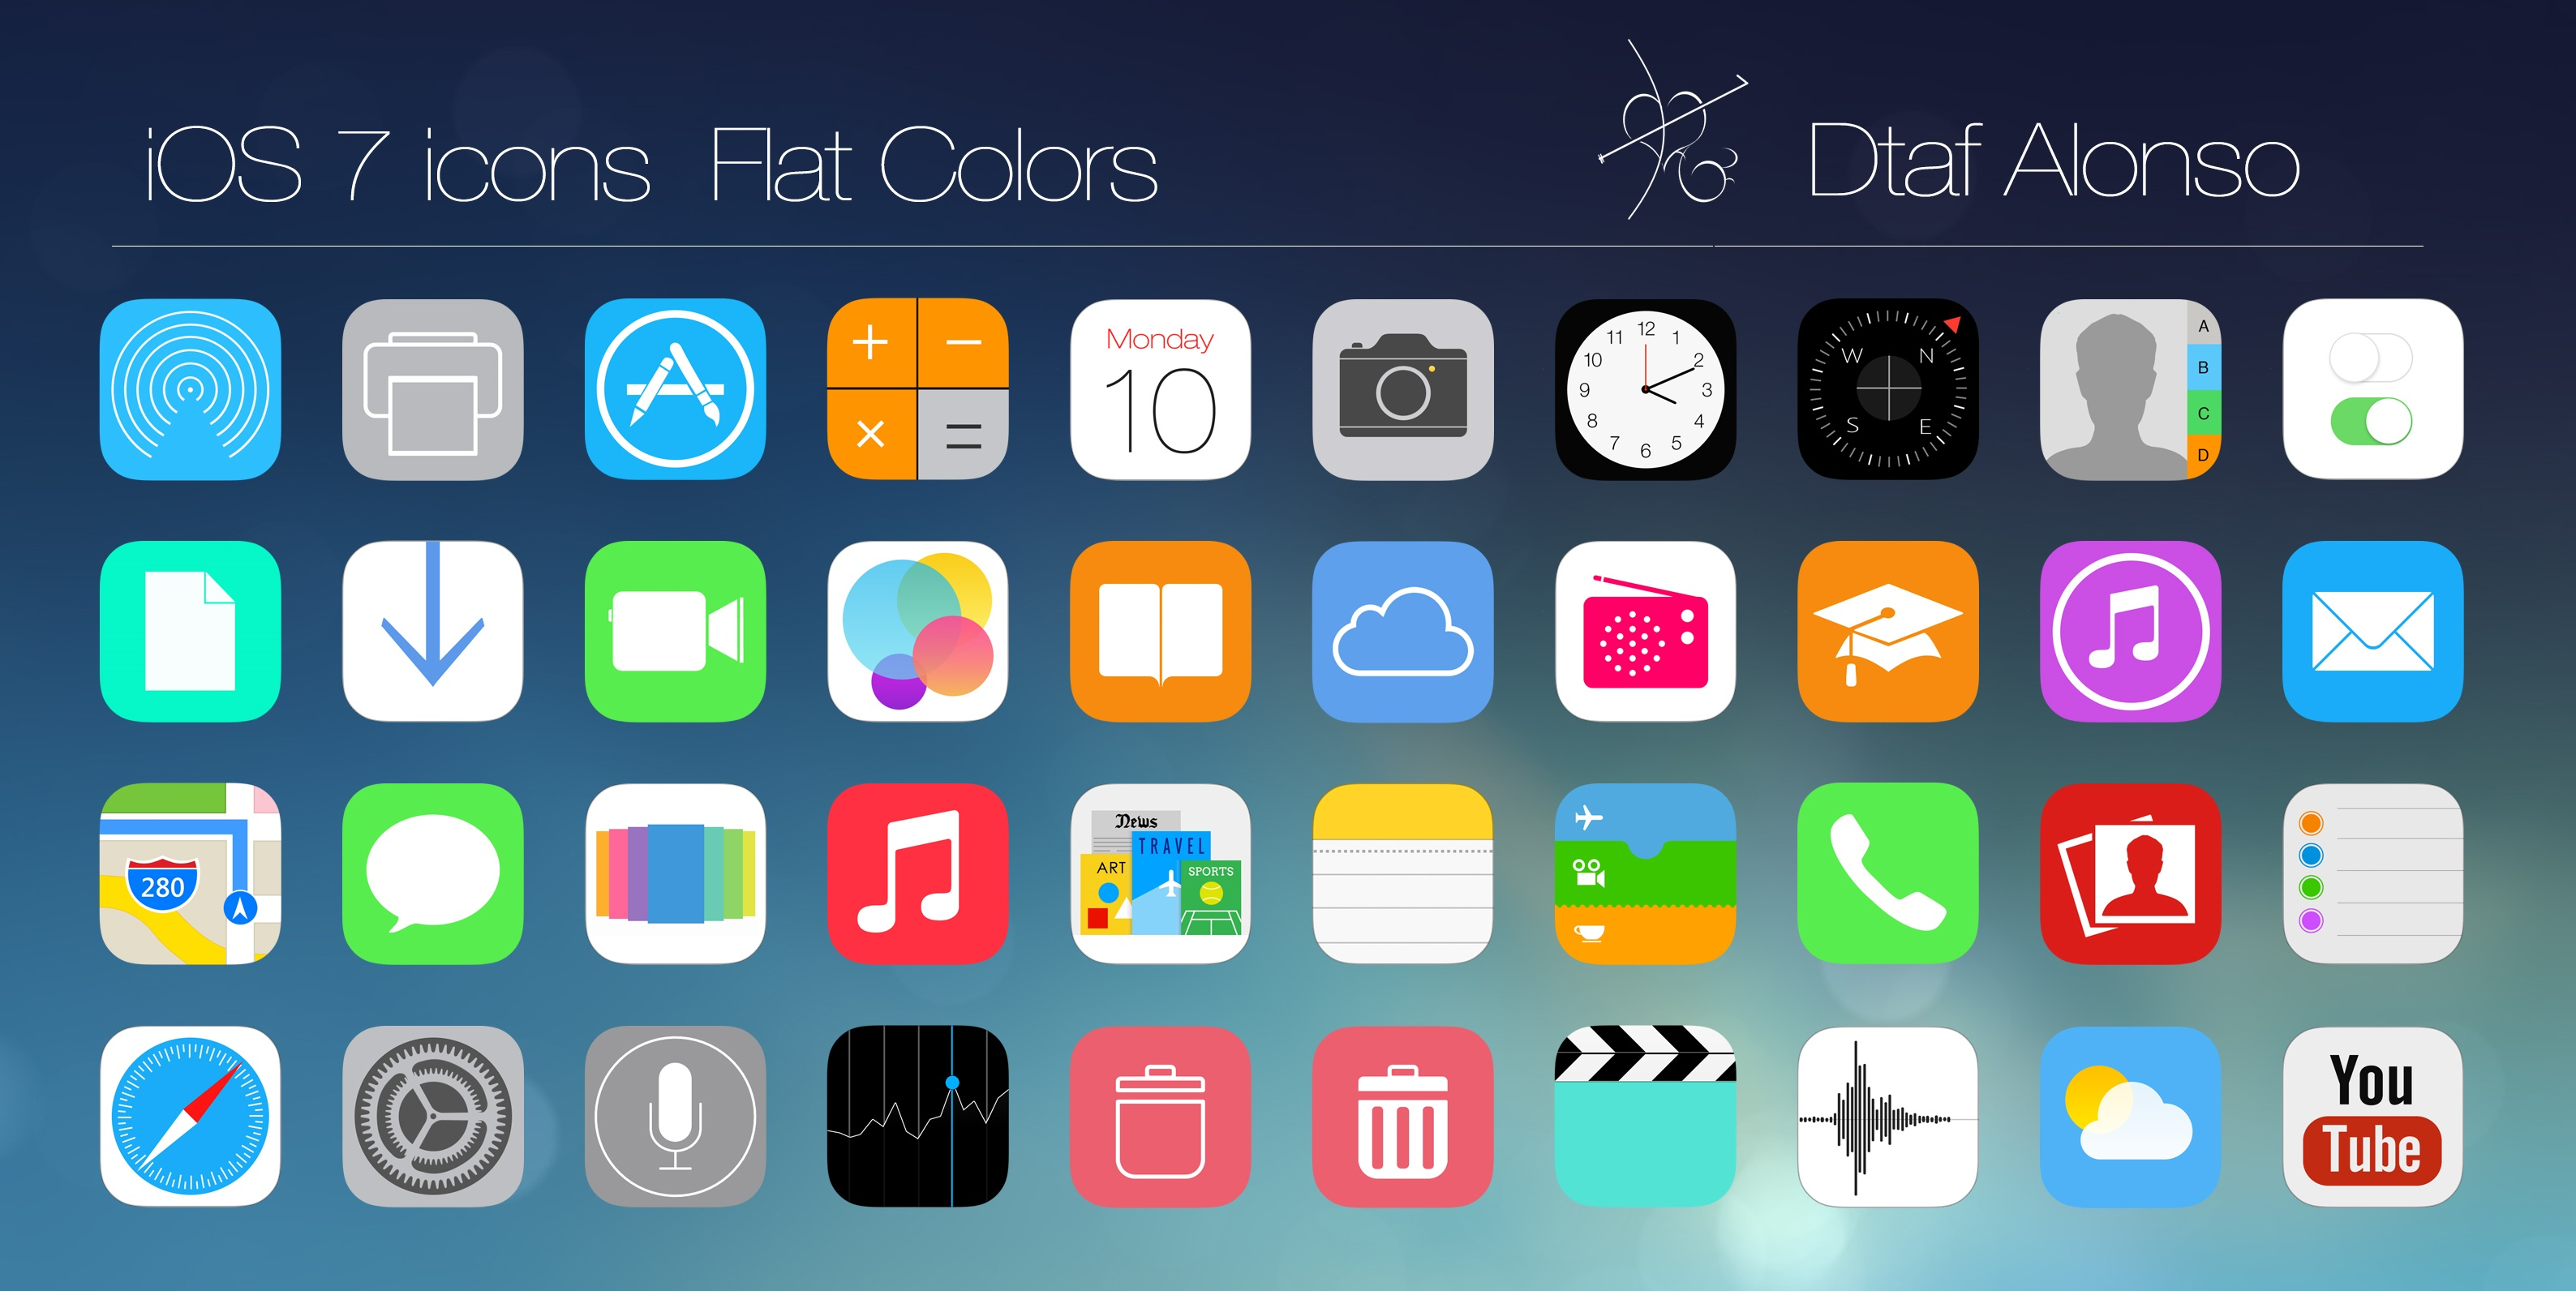 Ios 7 Flat Icons By Dtafalonso On Deviantart